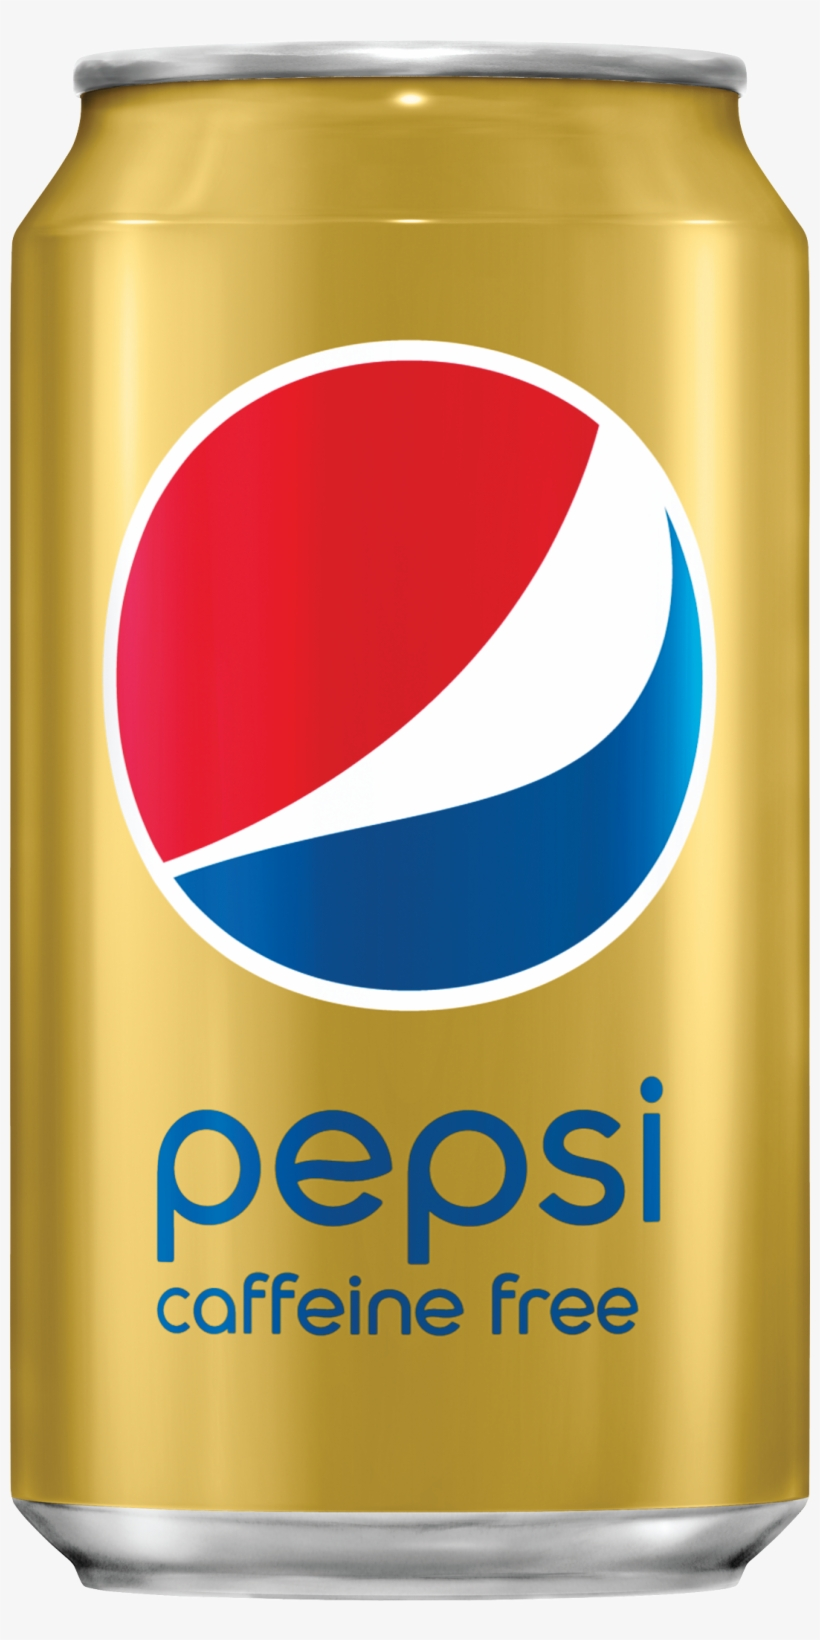 Pepsi Can Png Image Background - Pepsi Caffeine Free - 12 Fl Oz Can, transparent png #82865